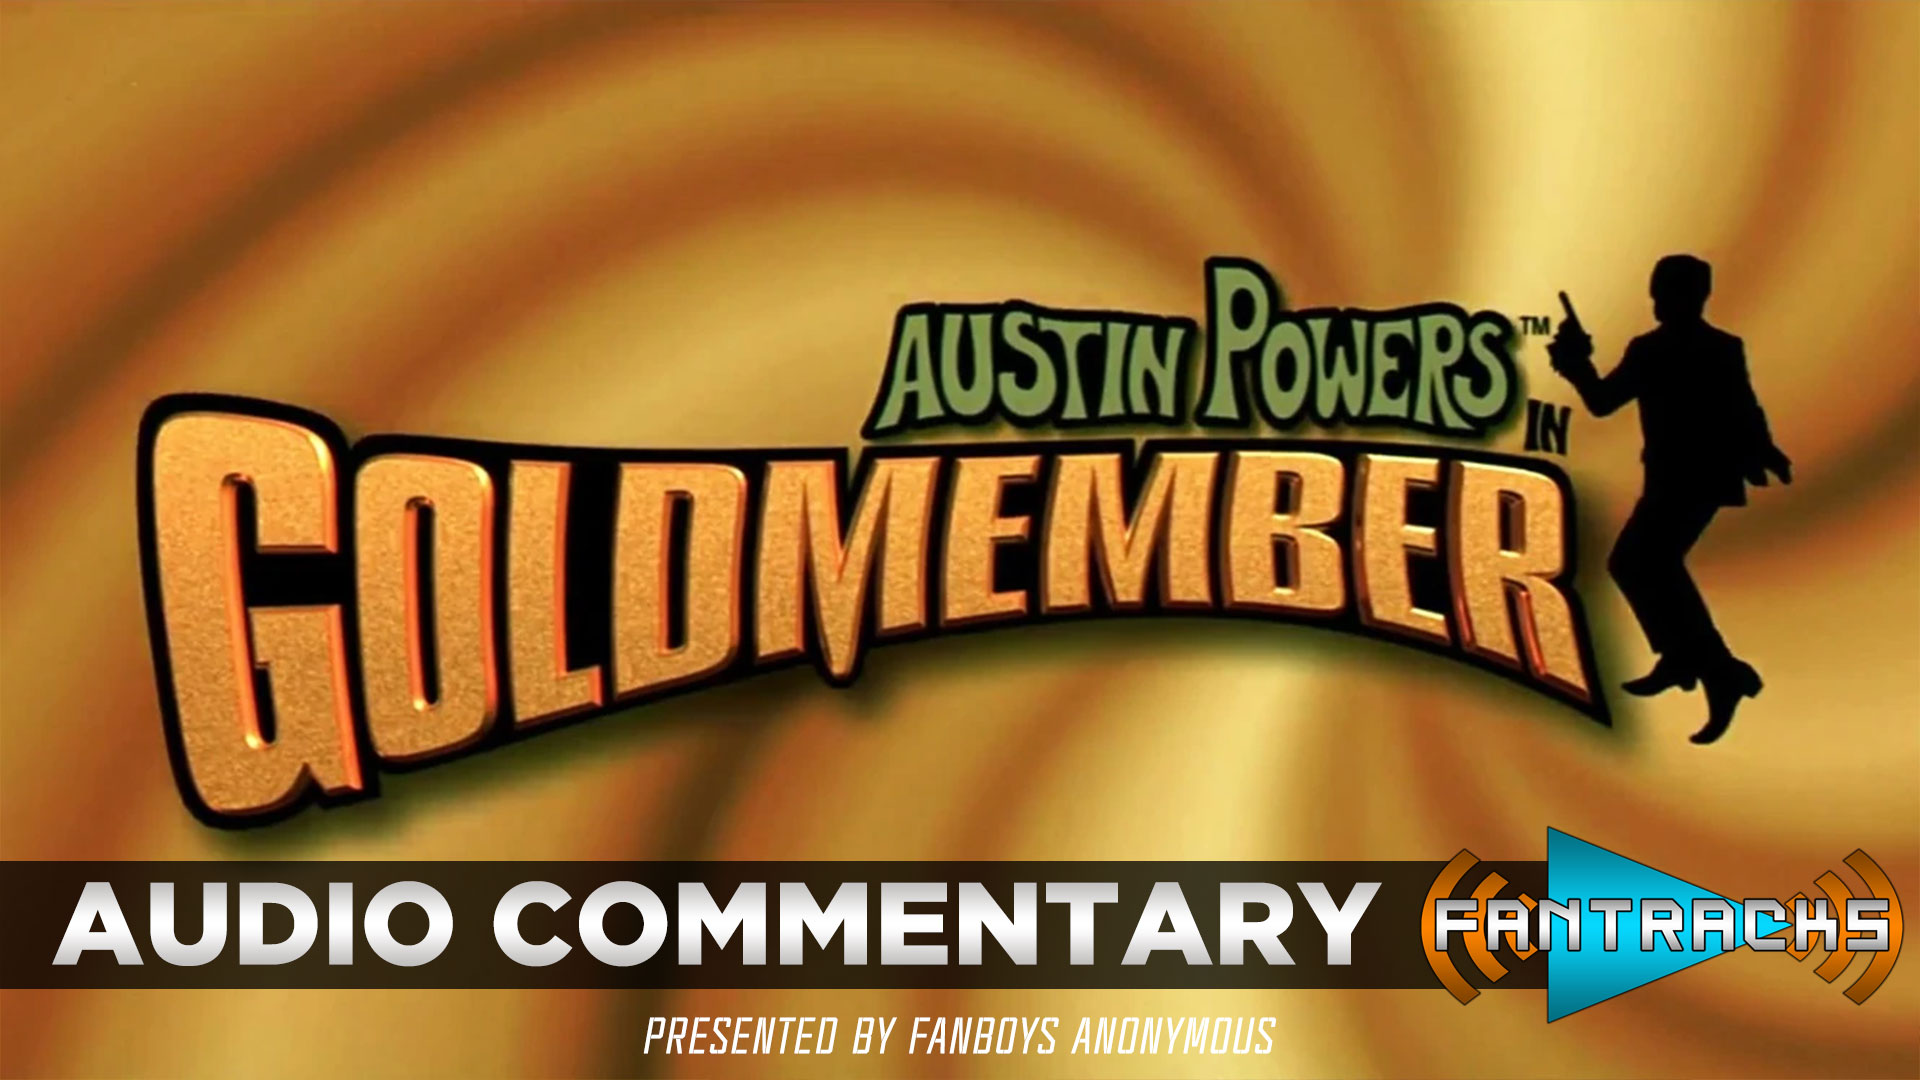 FanTracks Austin Powers in Goldmember audio commentary